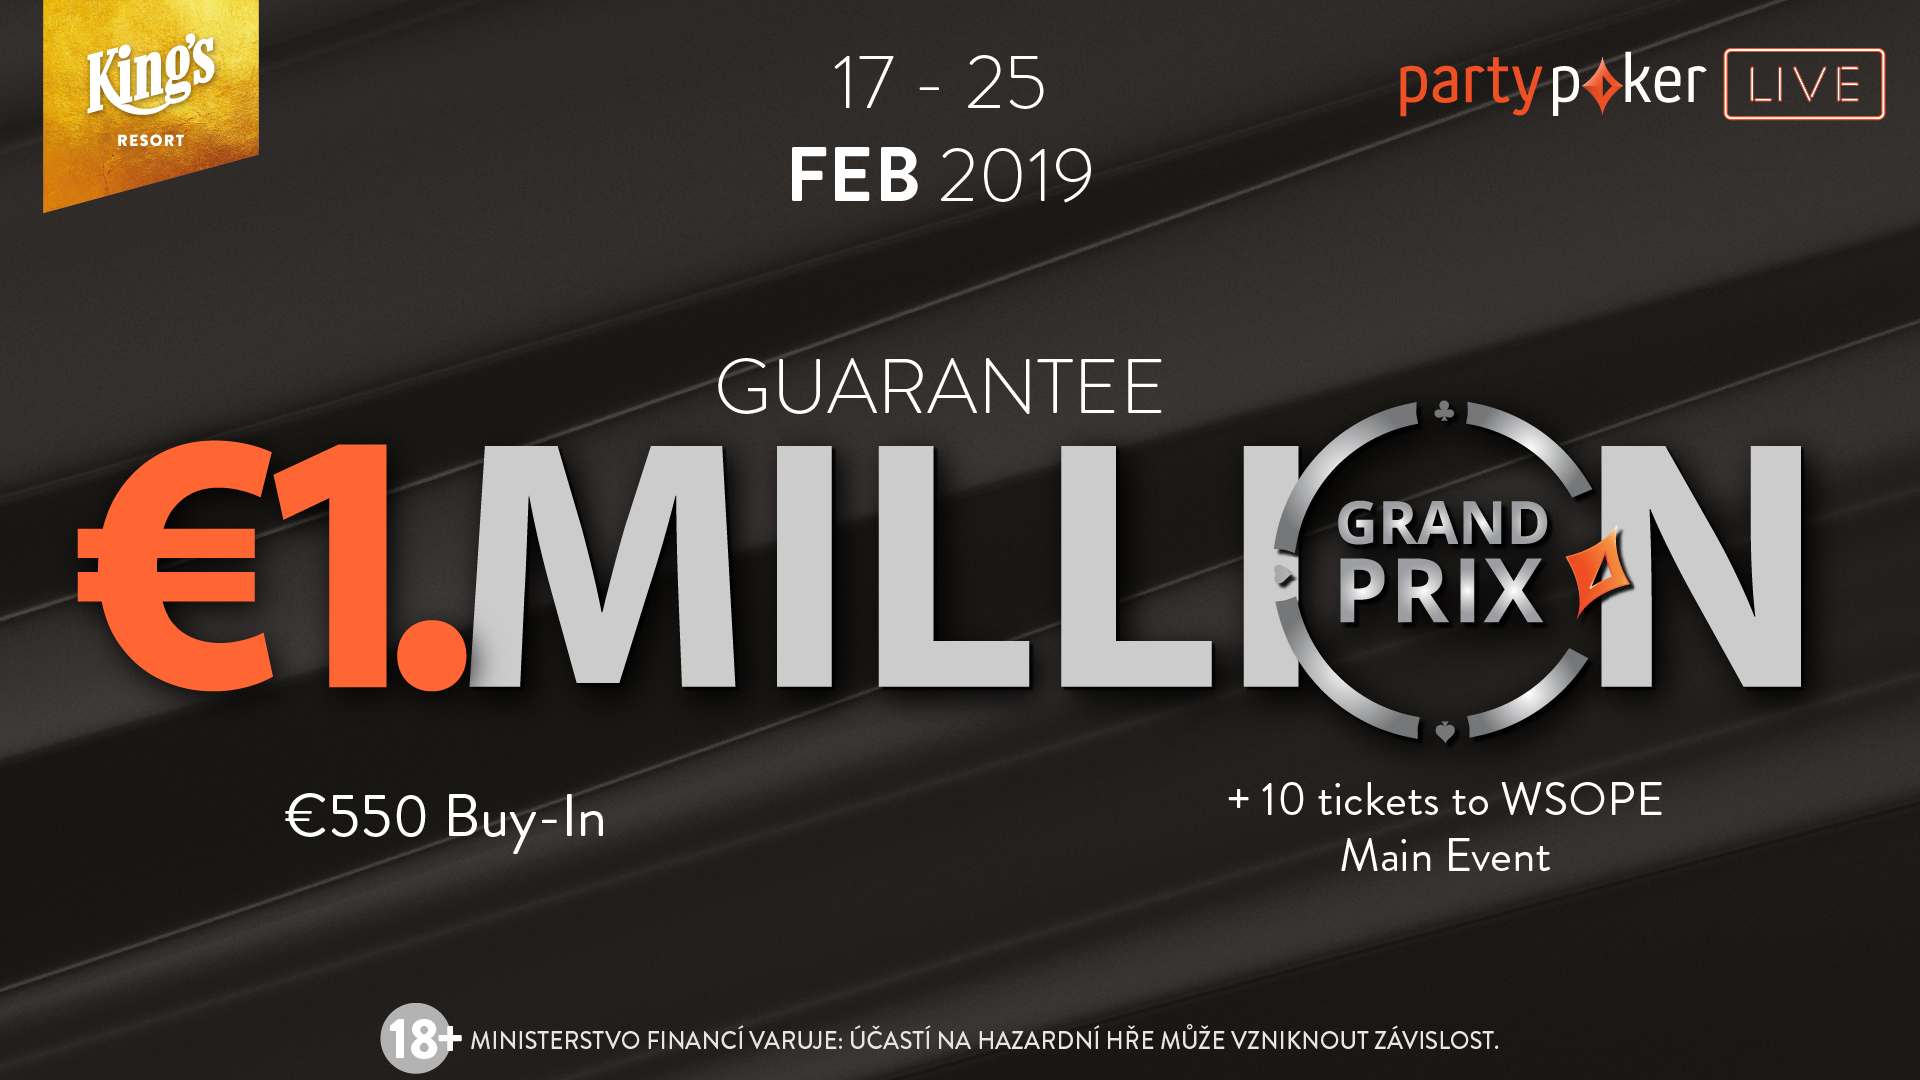 Partypoker Grand Prix Million_1920x1080